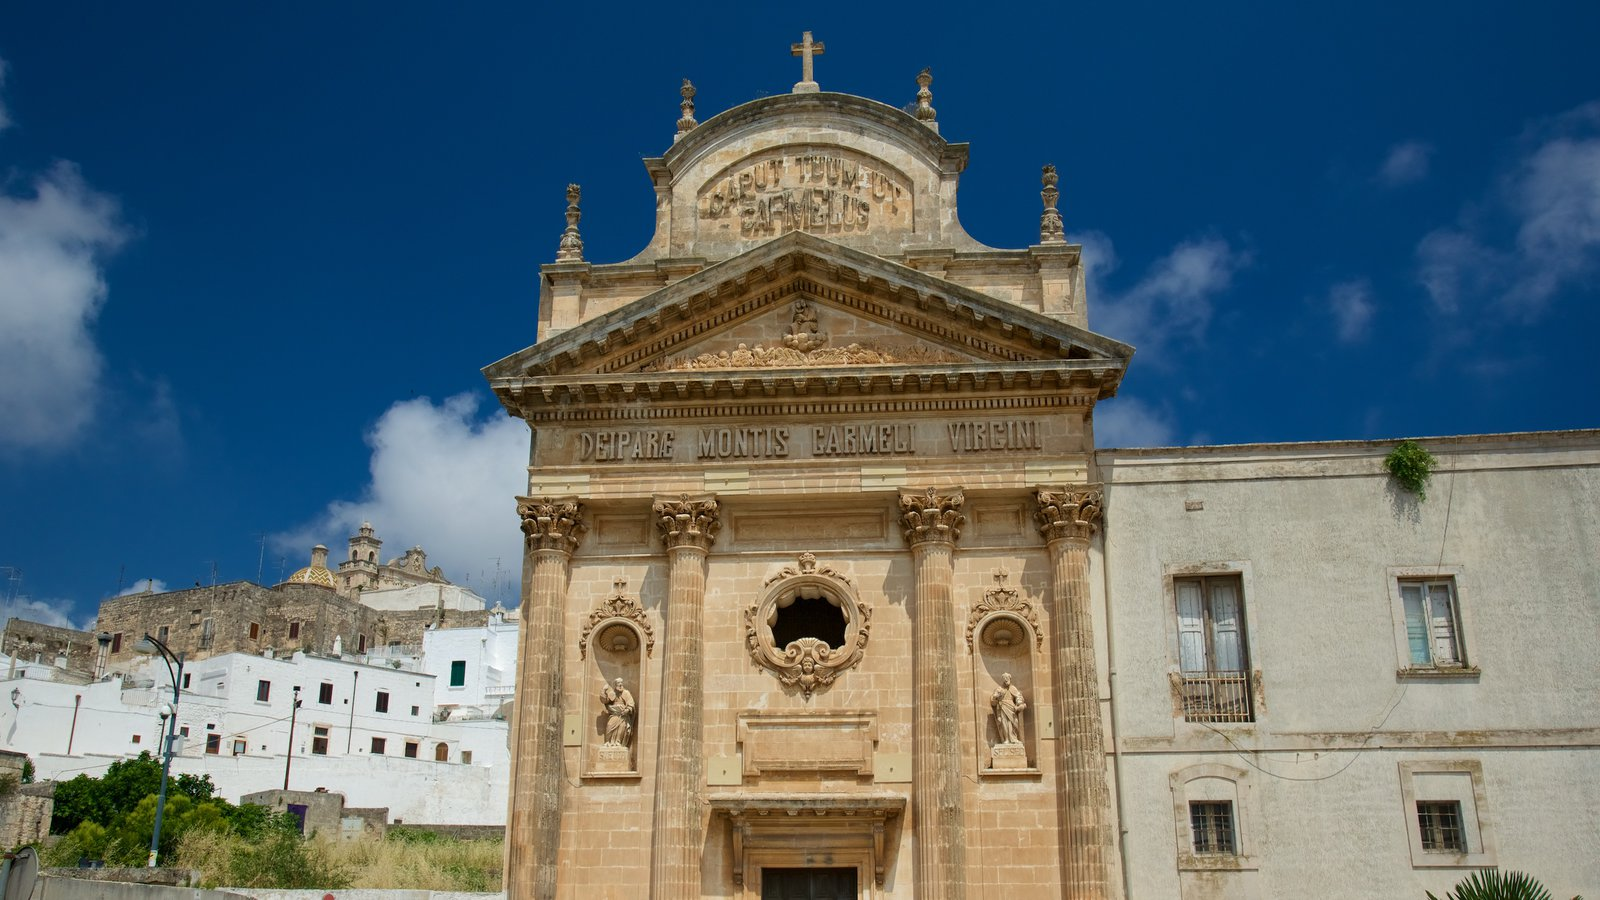 Brindisi showing religious aspects, heritage architecture and a church or cathedral